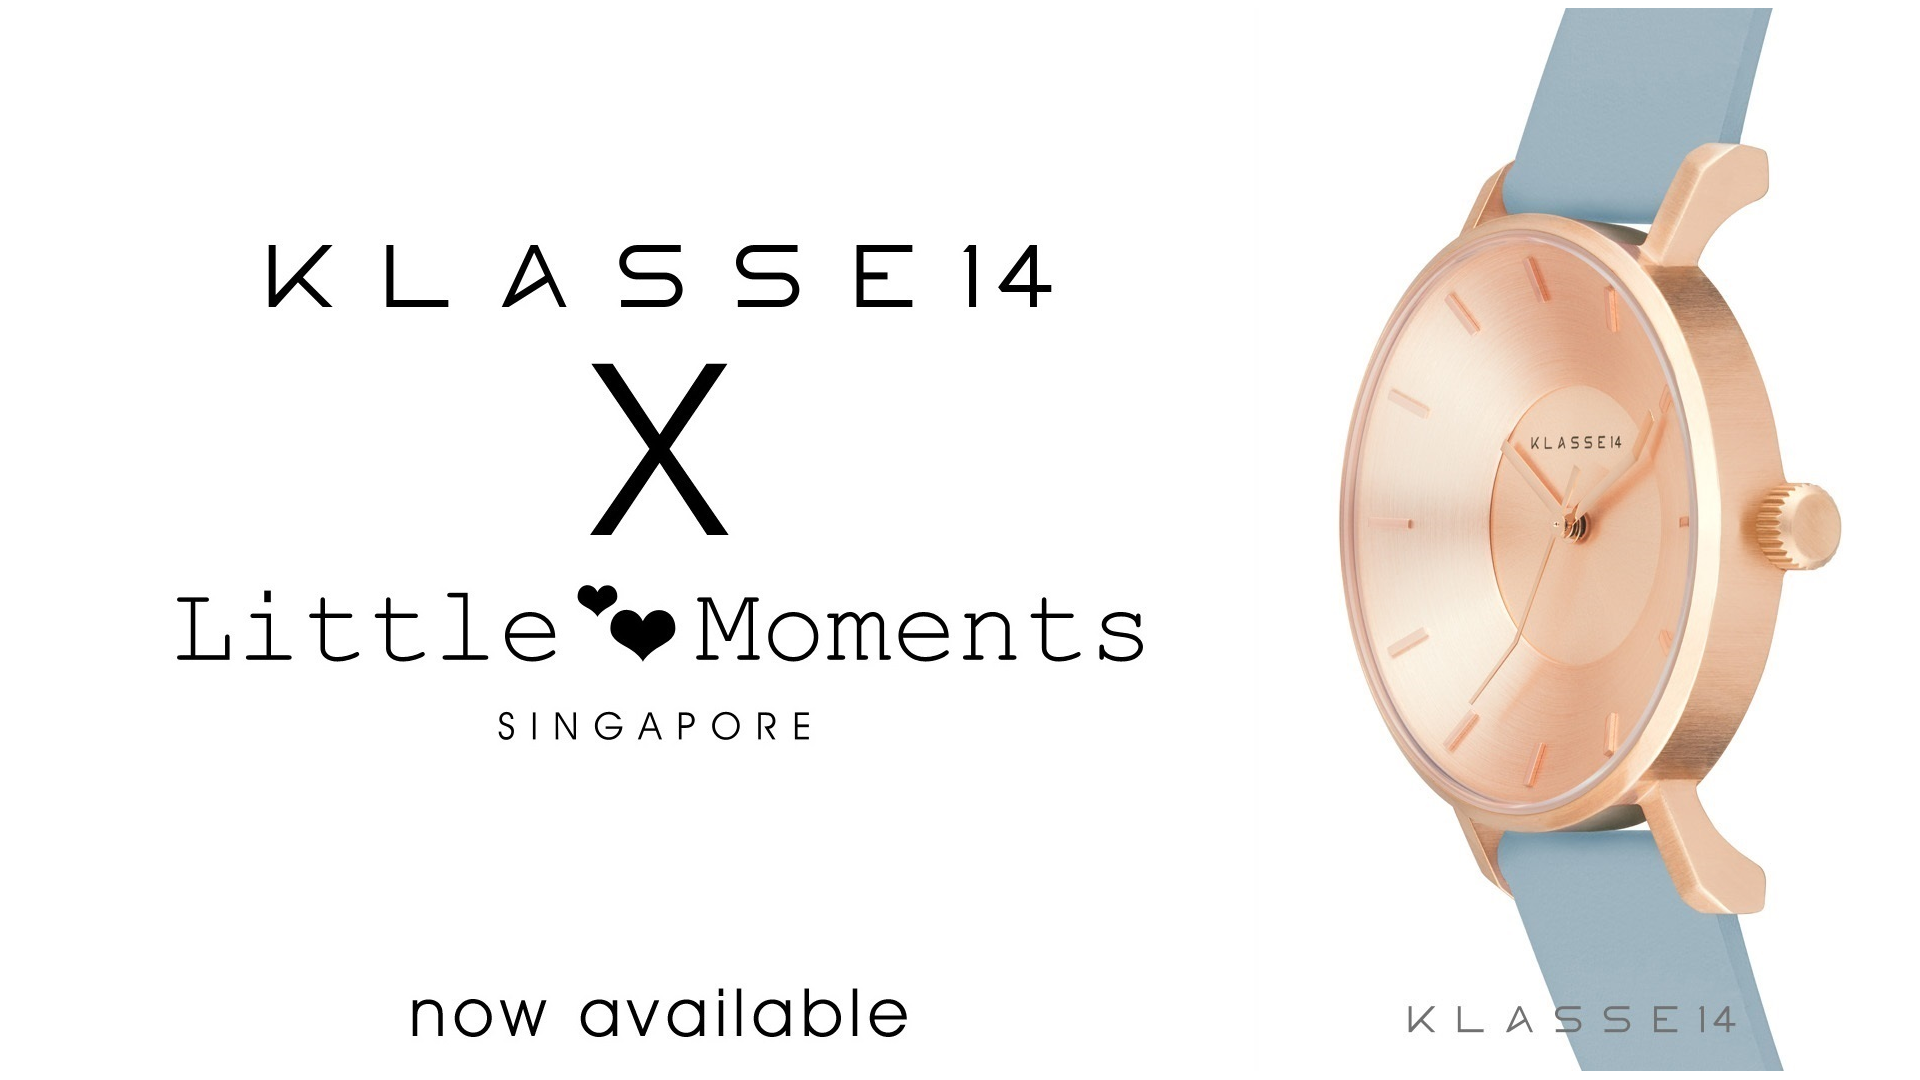 The Collaboration - Klasse14 x Little Moments Singapore